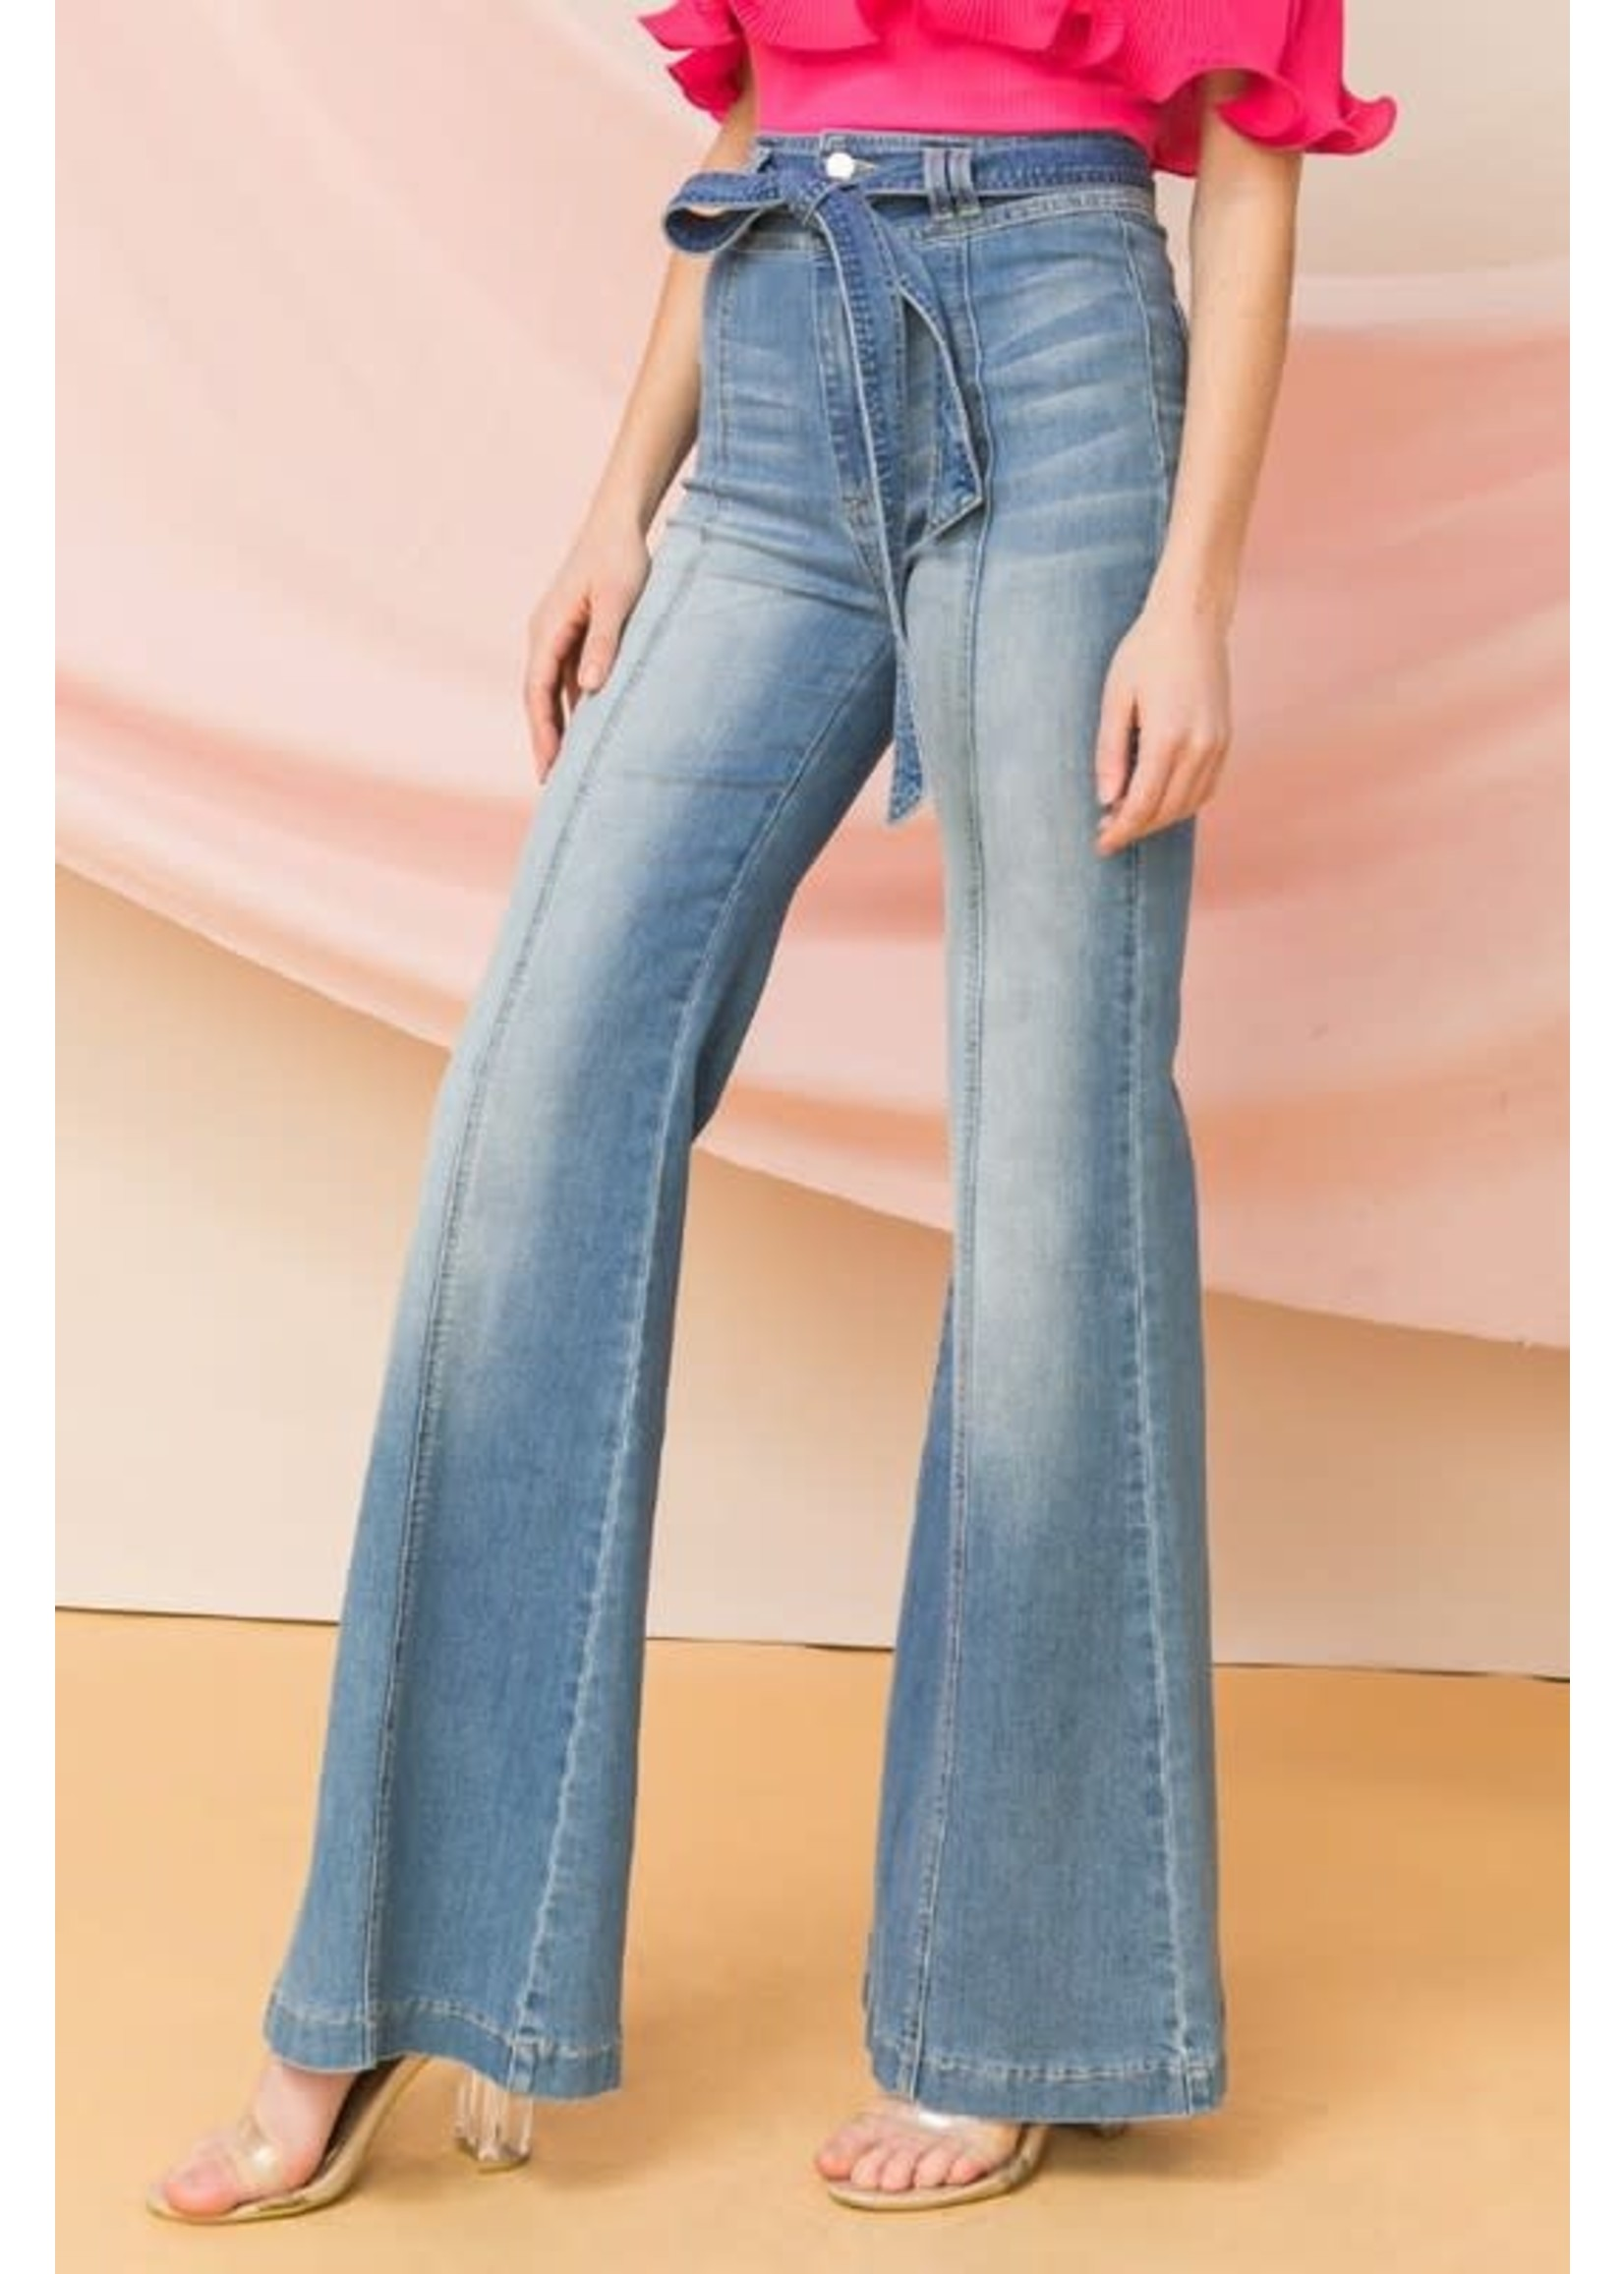 Flying Tomato High-Waisted Bell Bottom Jeans With Tieable Belt - AP1357-B